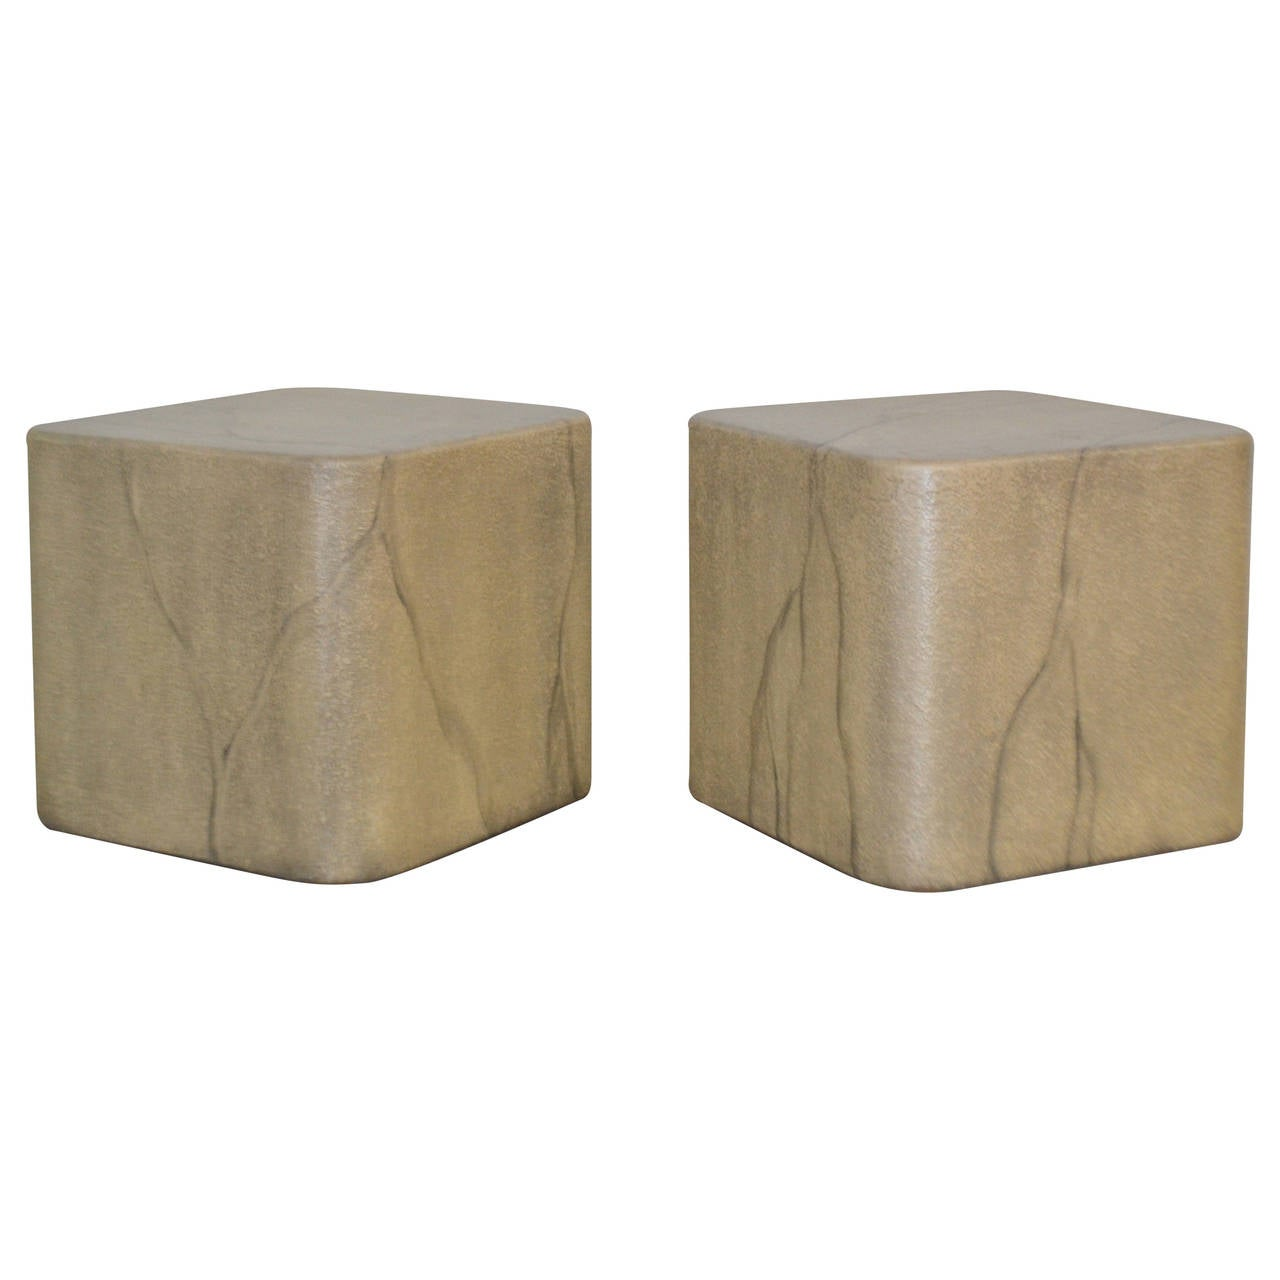 Pair Of Faux Marble Cube Form Side Tables Or Coffee Table At 1stdibs